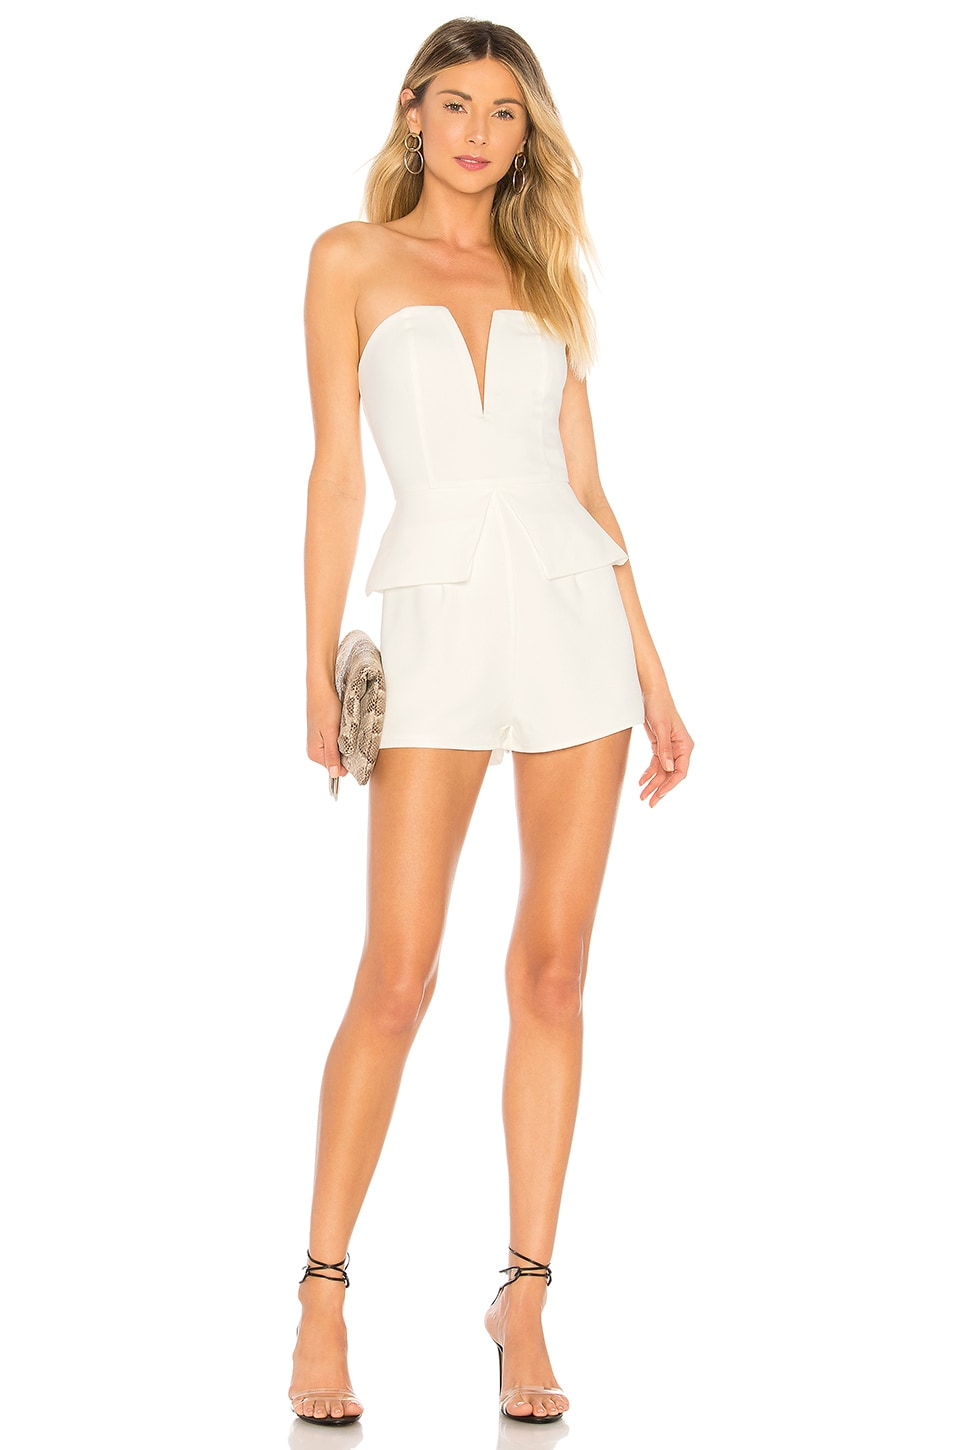 About Us Pepper Strapless Romper in White